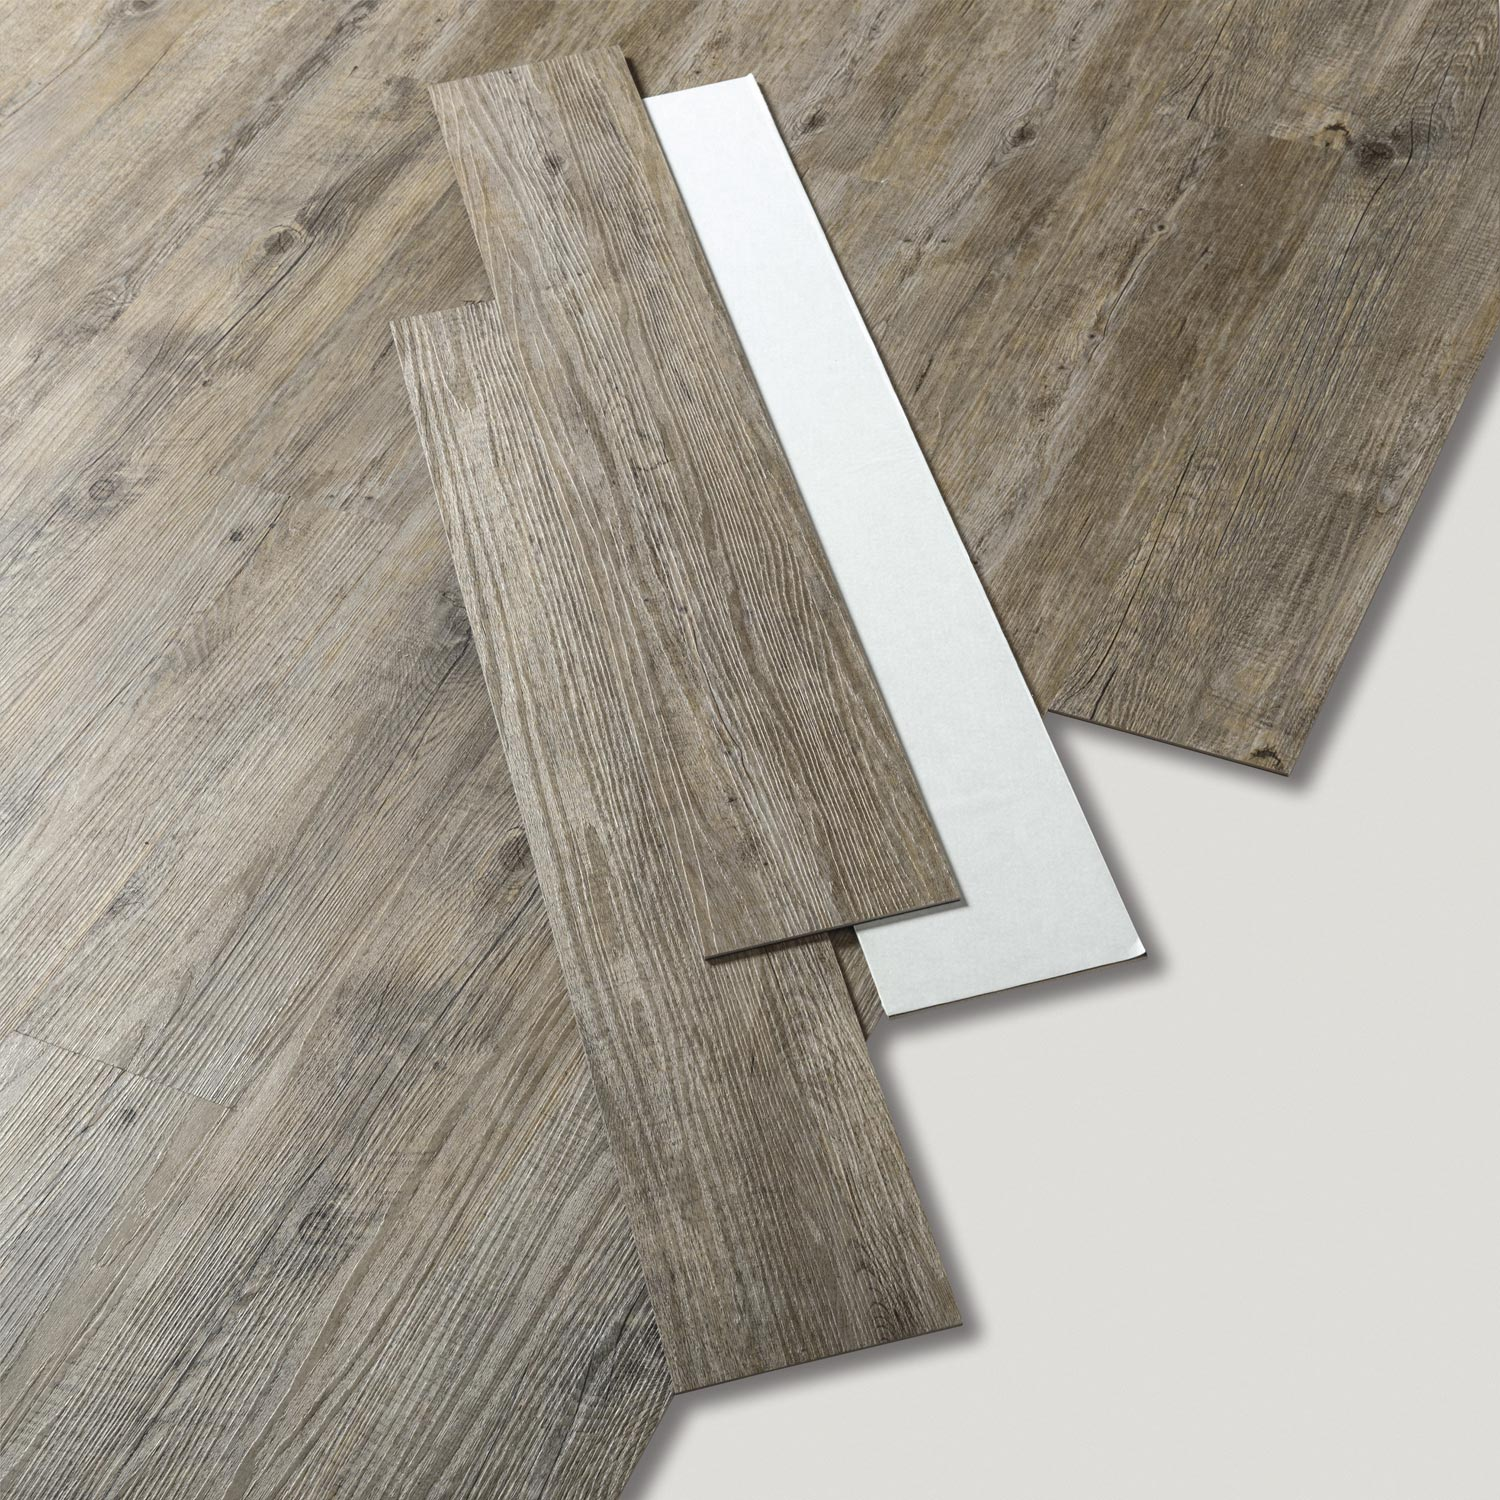 Lame pvc autoplombante gris pecan senso adjust gerflor for Dalles pvc clipsables gerflor